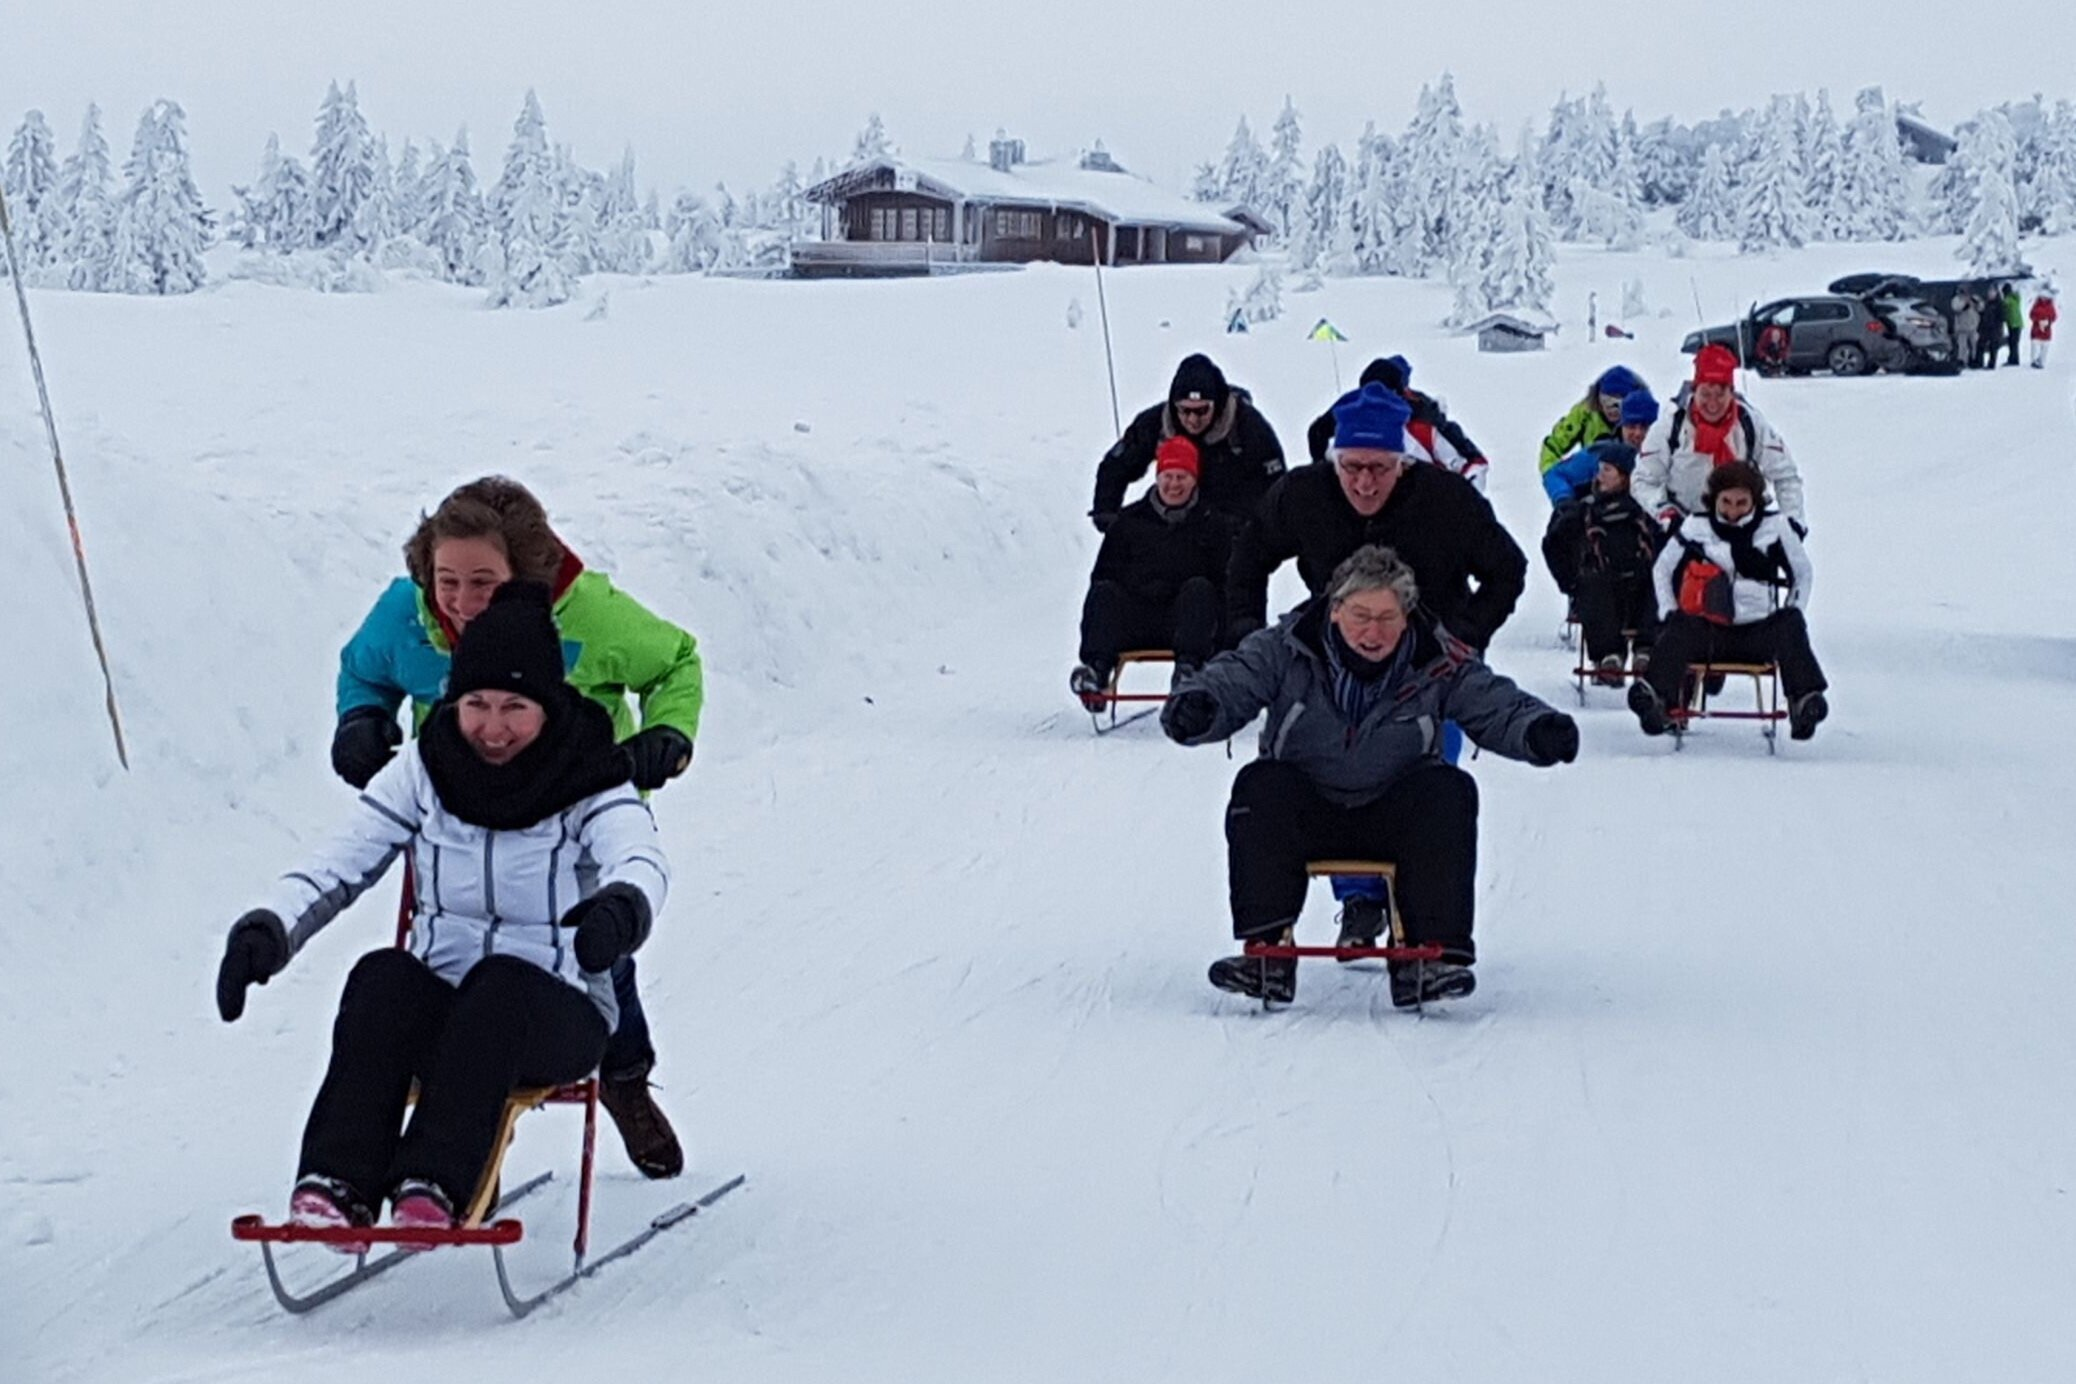 Norwegian kick relay - great fun and keeps the guests warm